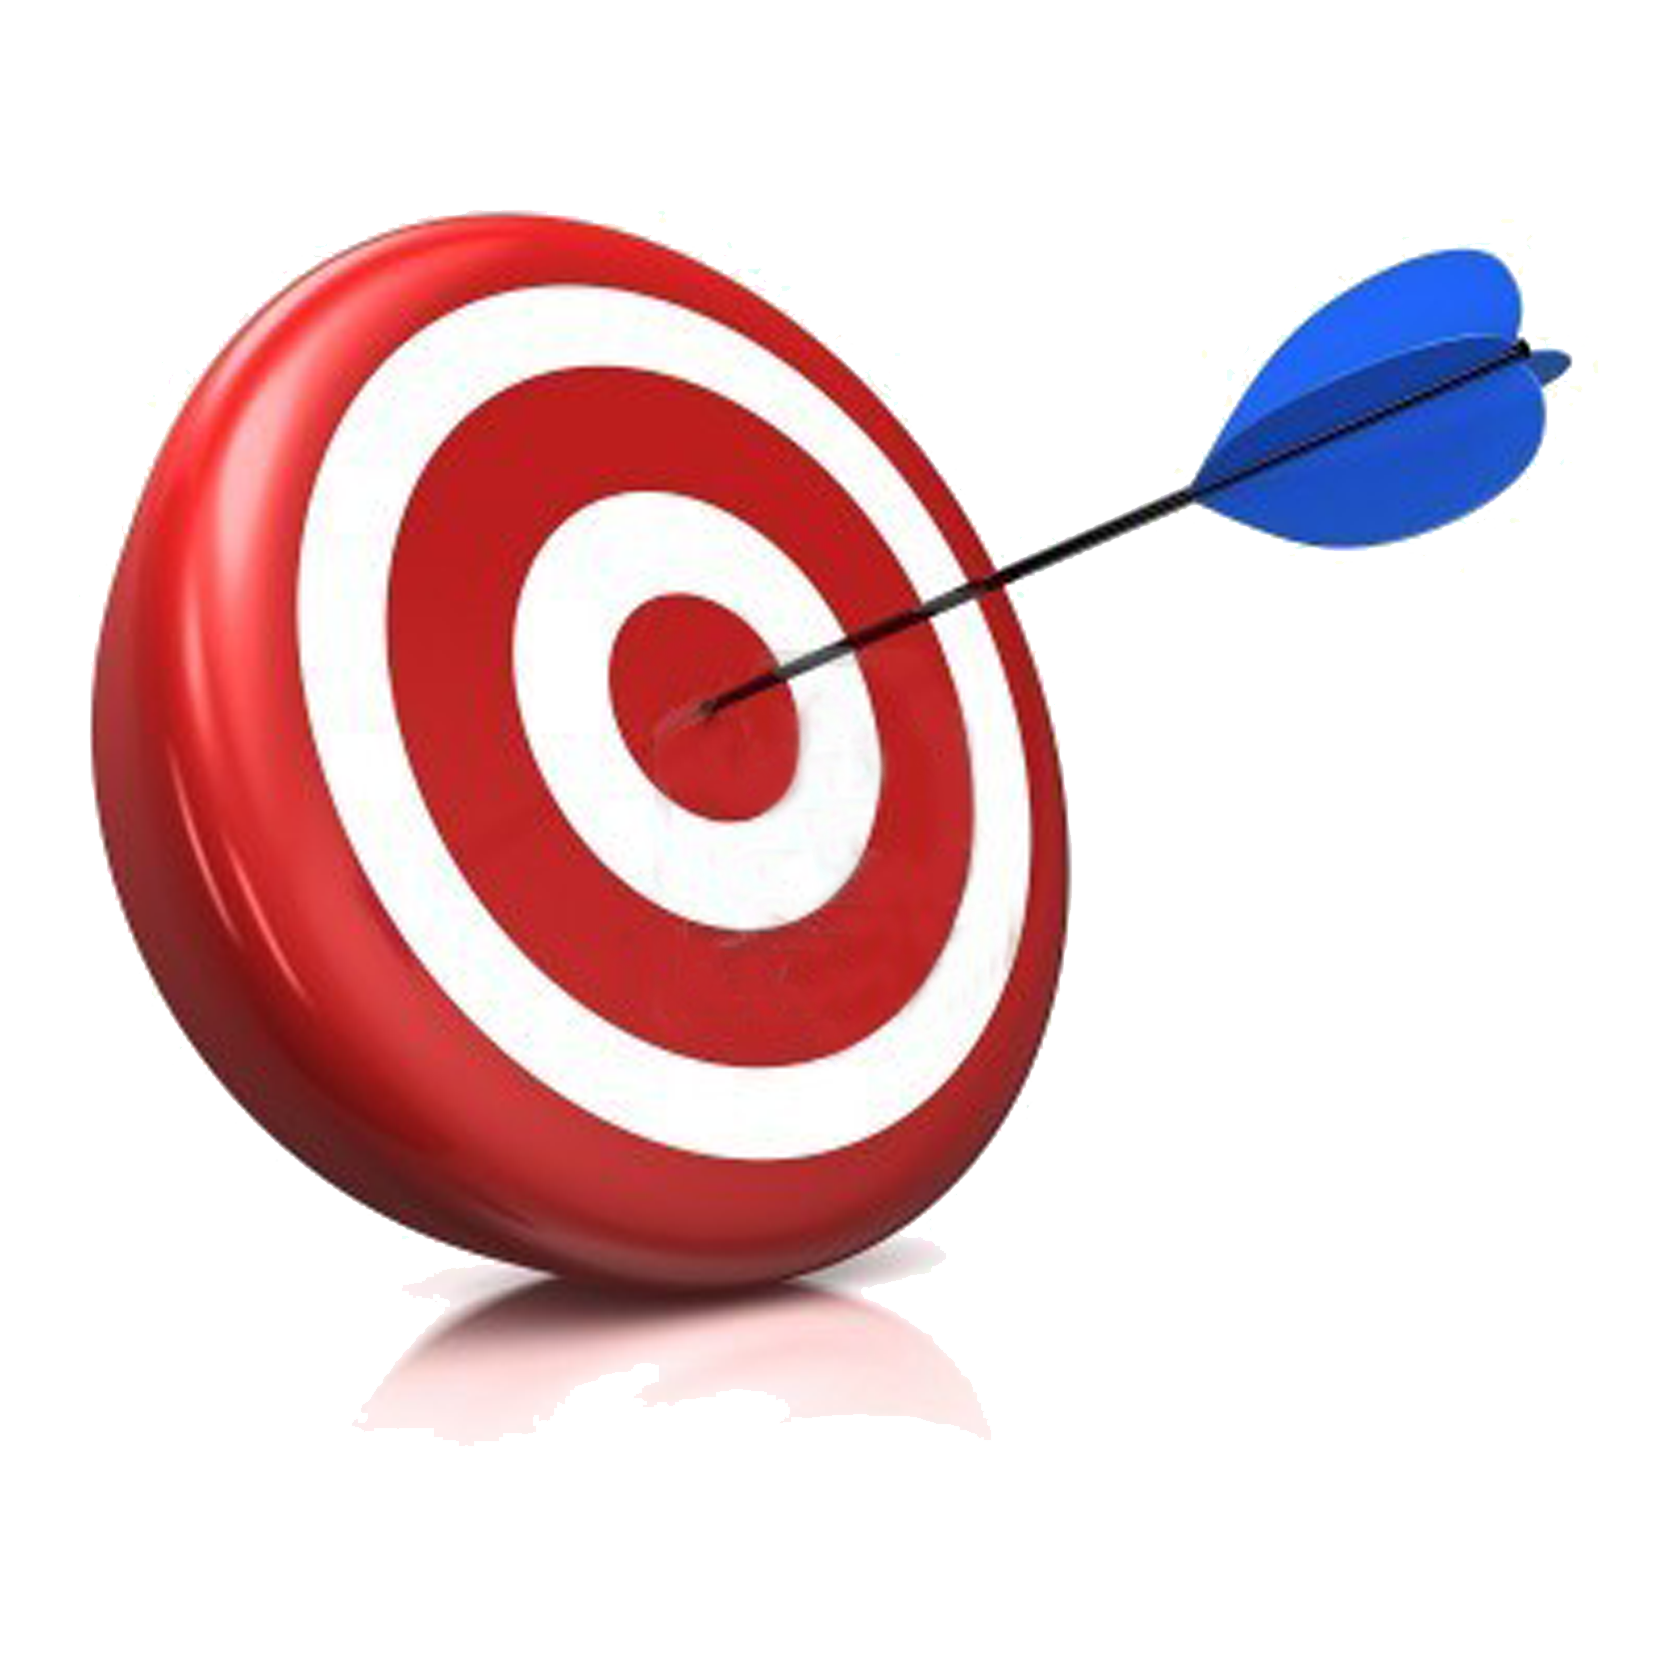 target clipart learning